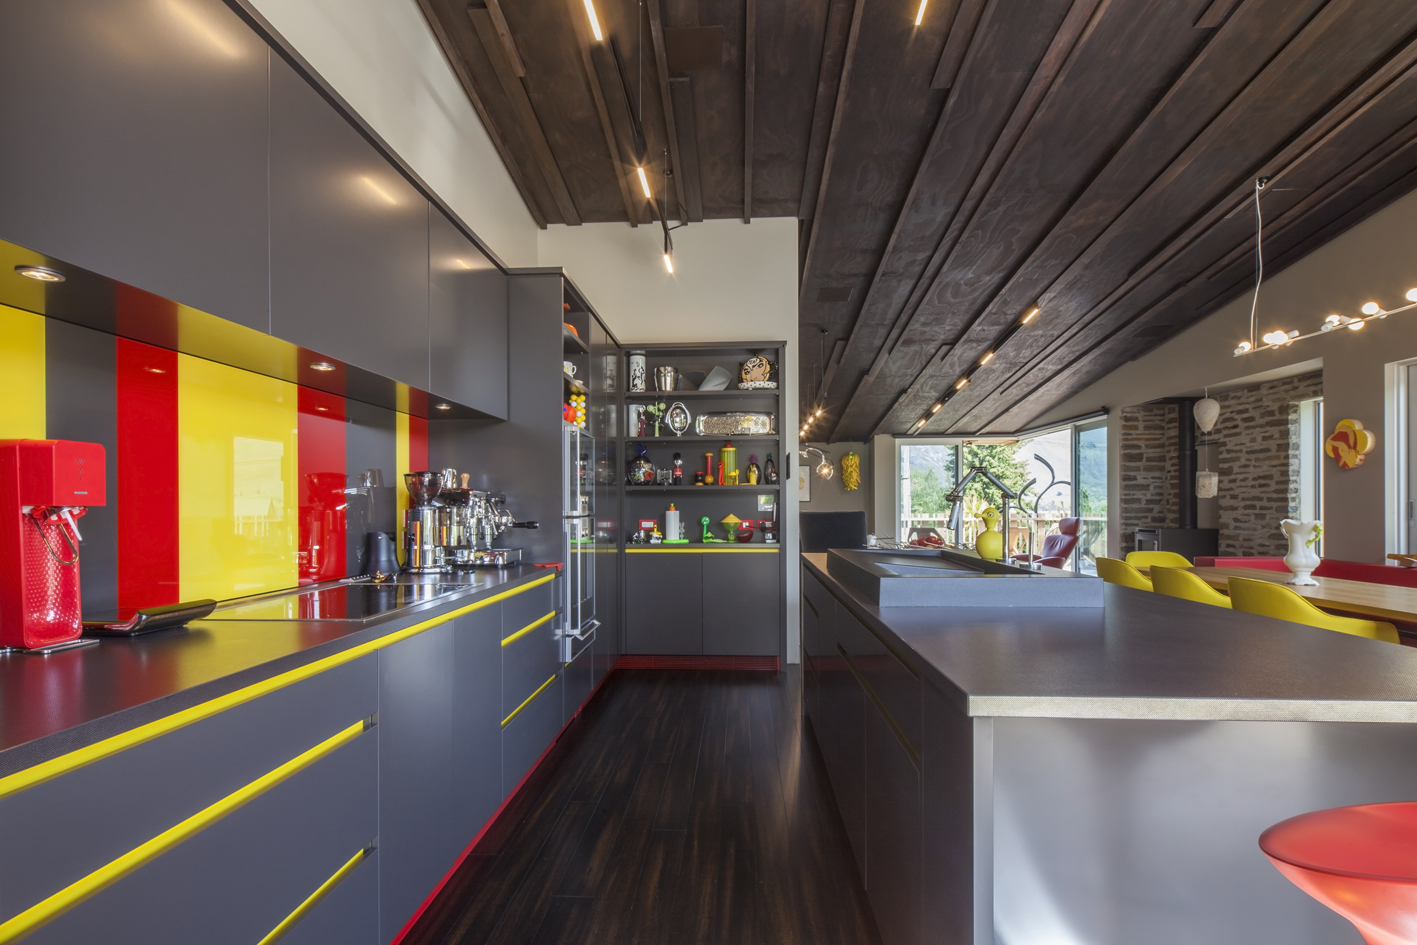 Stripy splashback -  Resene Ironsand cabinetry with accents in Resene Bullseye (red) and Resene Spotlight (yellow).  The board and batten ceiling is stained  in Resene Colorwood Dark Oak